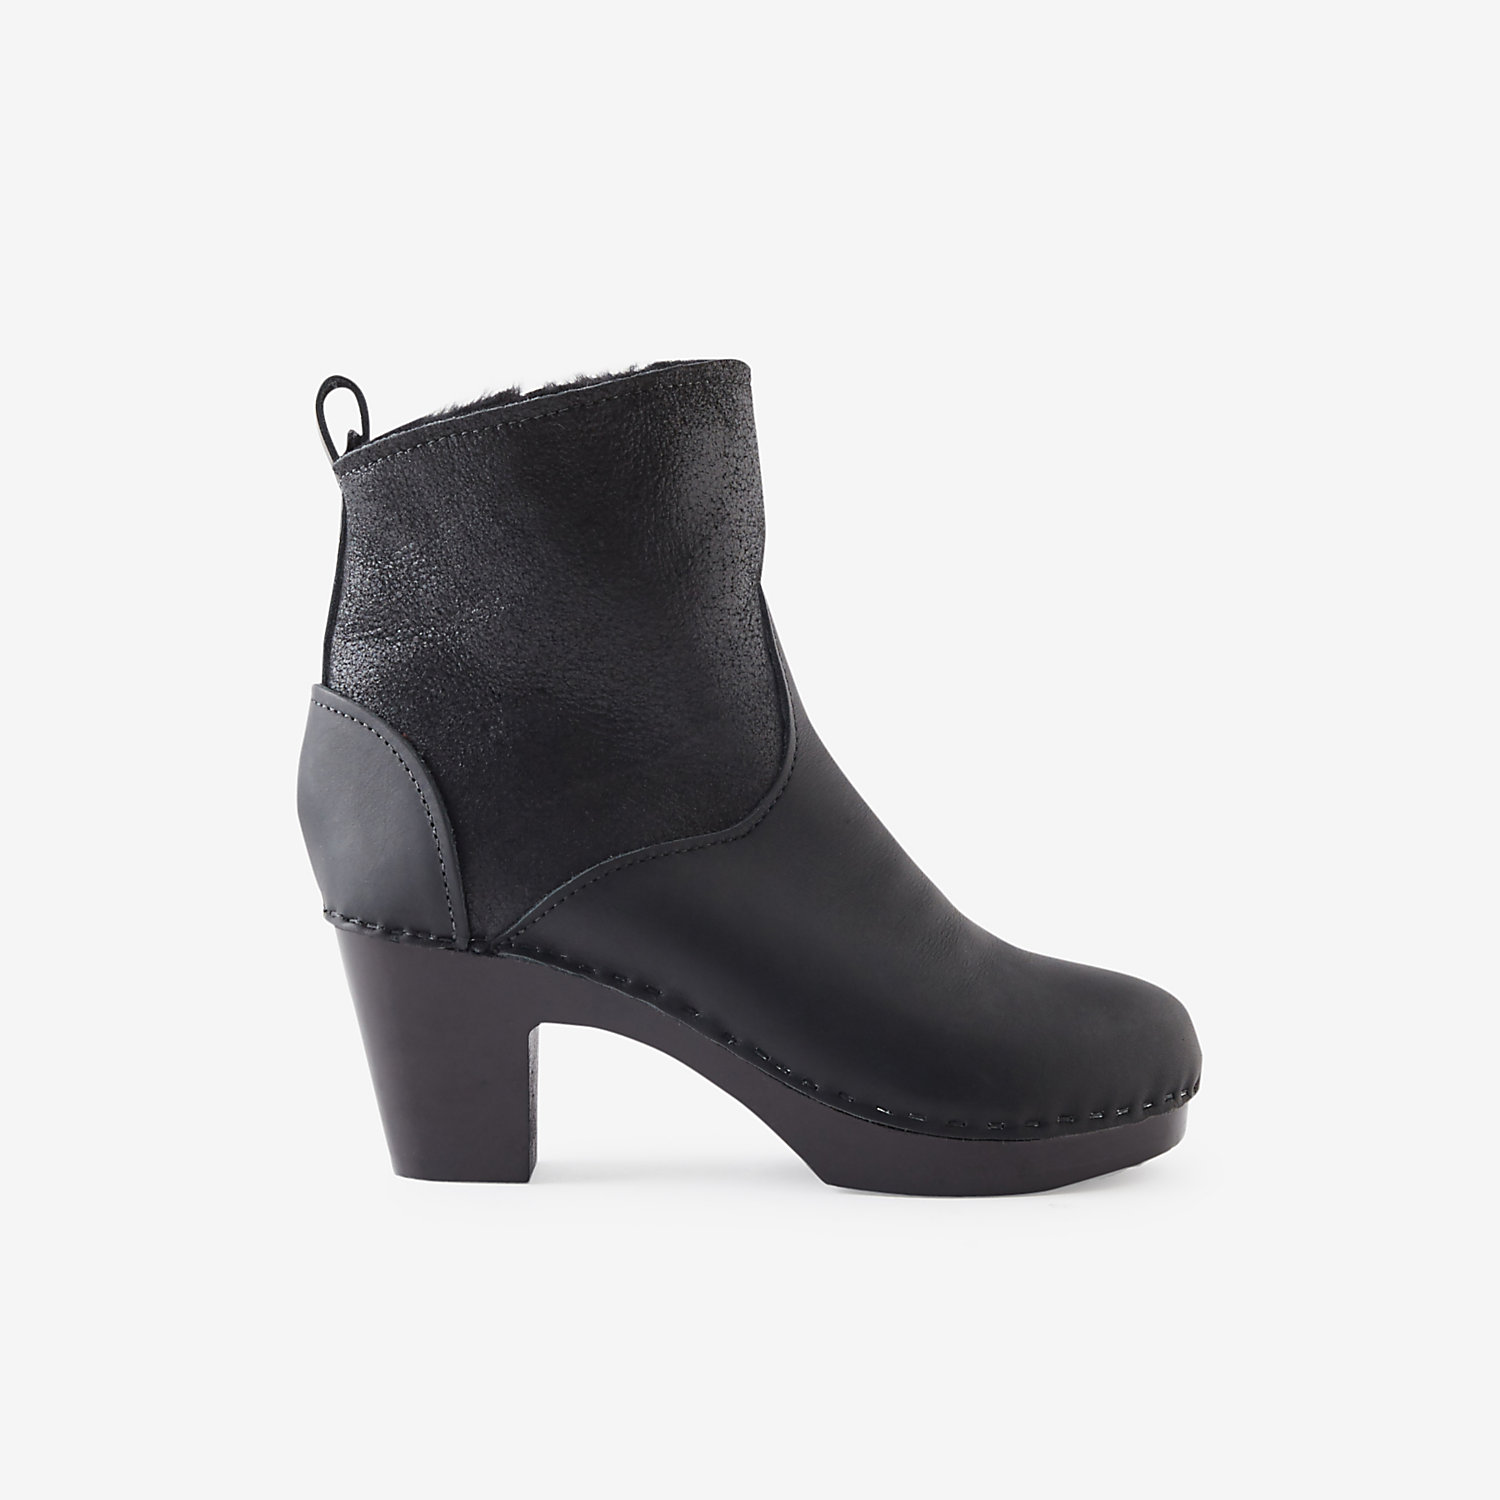 HIGH-HEEL PULL-ON SHEARLING CLOG BOOT